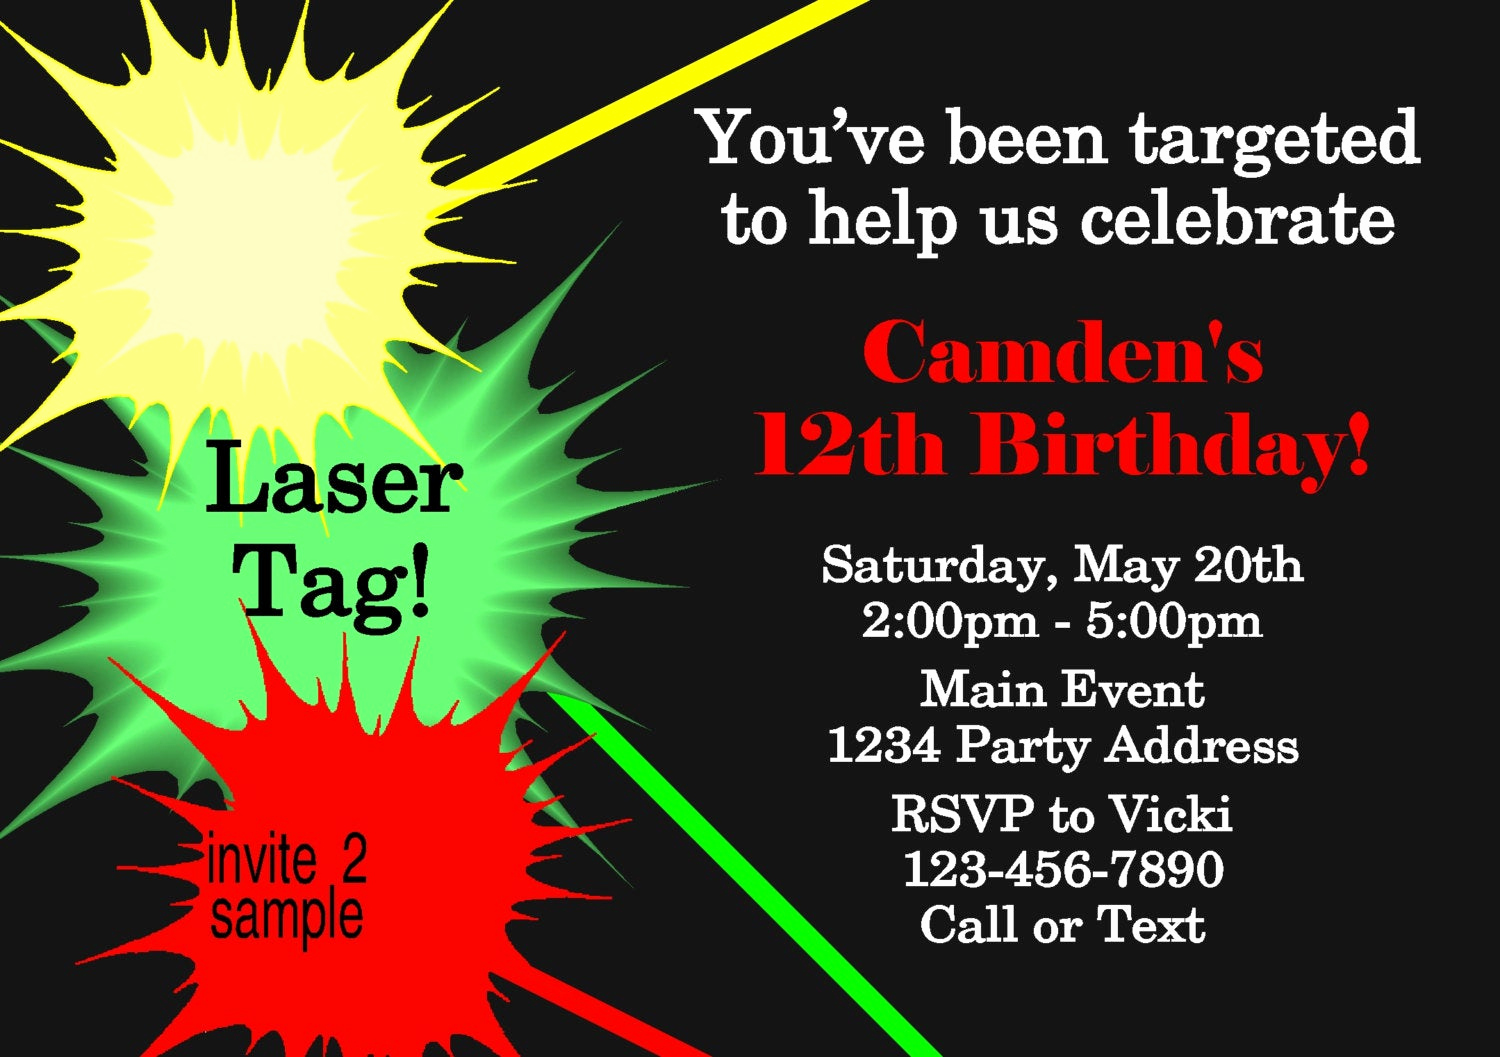 Laser Tag Invitation Wording New Laser Tag Invitation Laser Tag Birthday Party by Jcsaccents